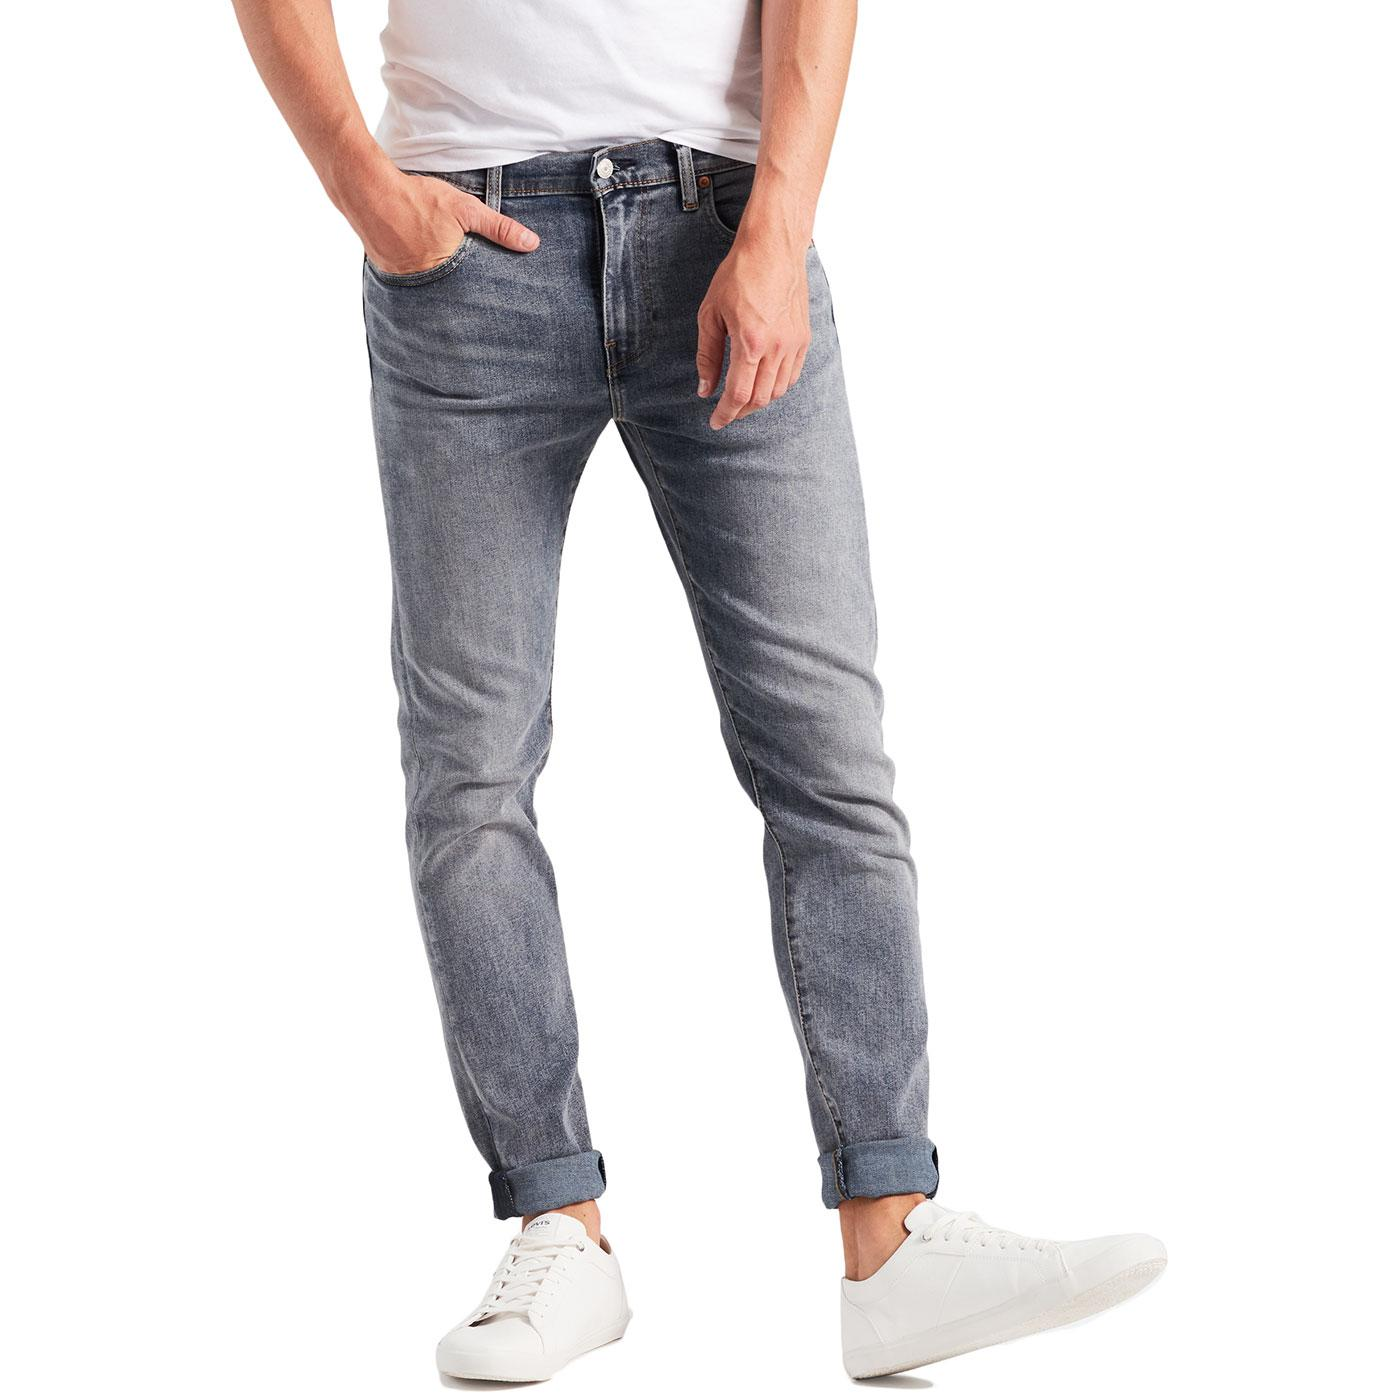 cfedf0cd8c0 LEVI'S 512 Men's Slim Taper Denim Jeans in Despacito Adv T2